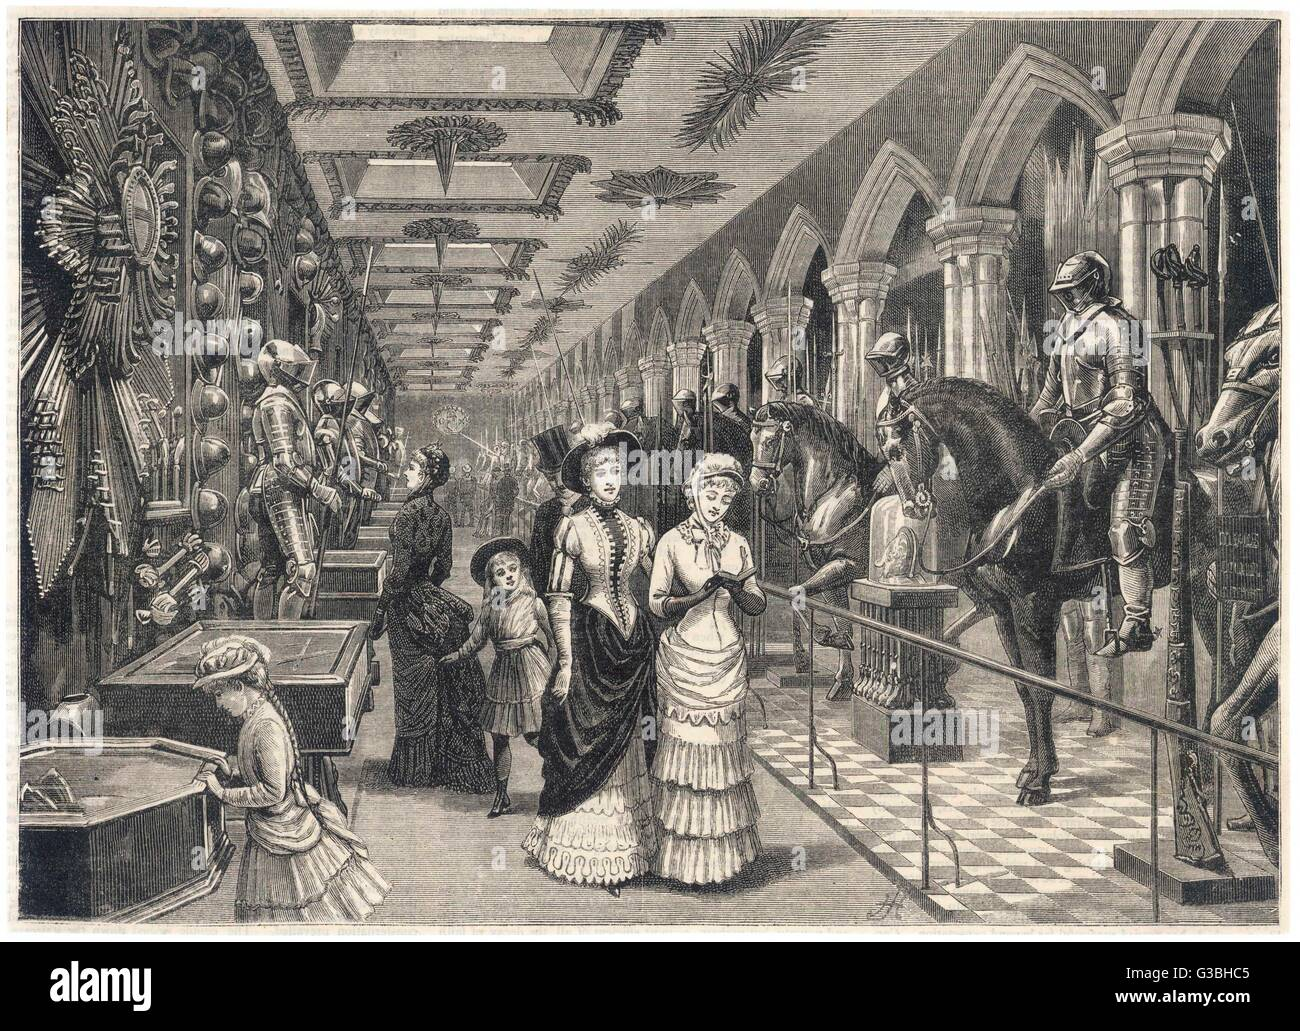 Sightseers in the Armoury.         Date: 1885 - Stock Image